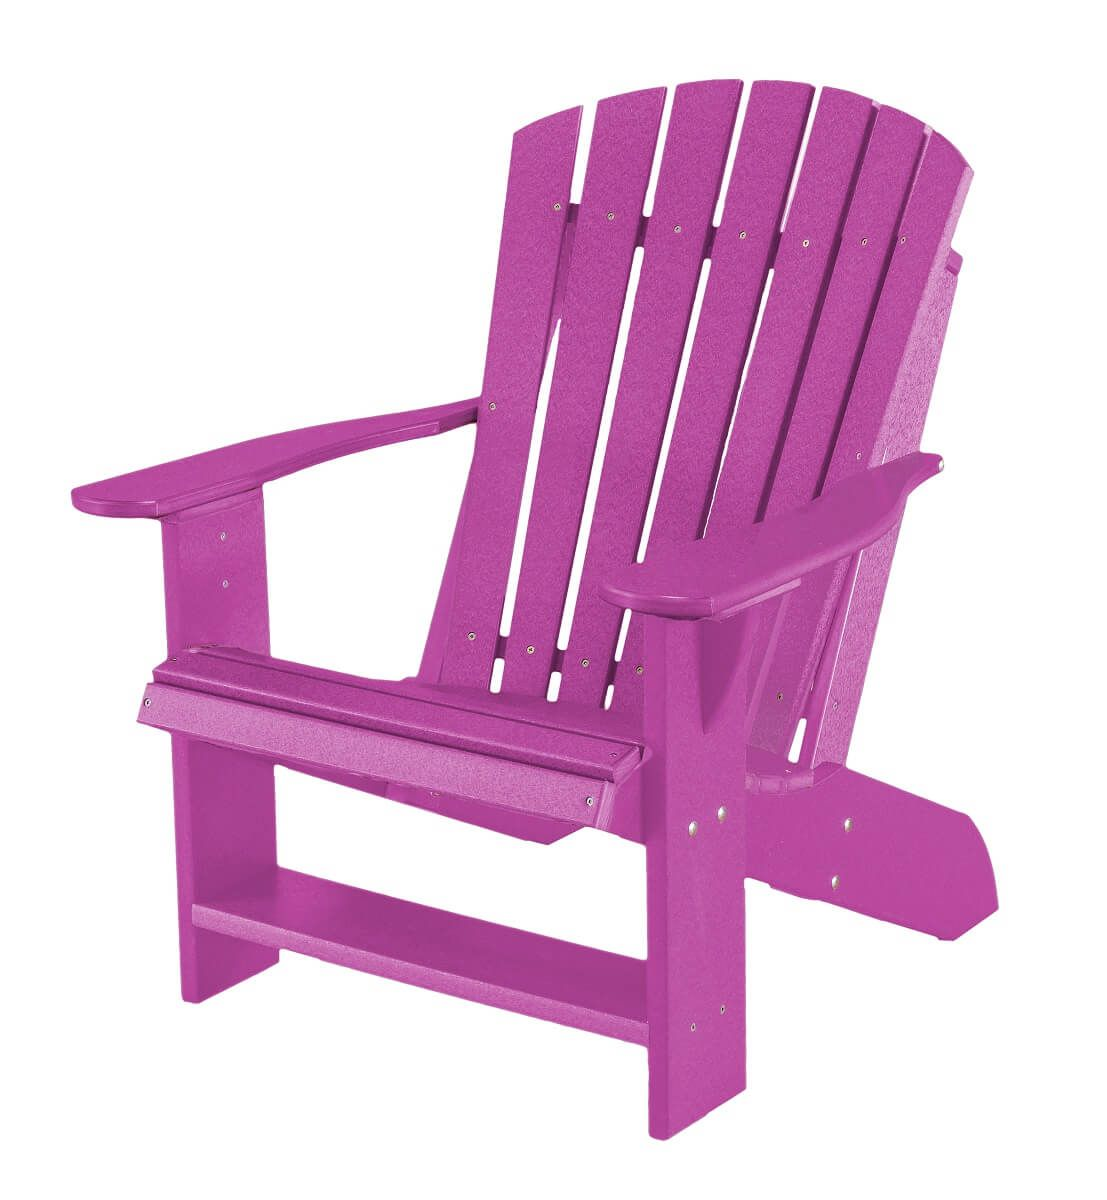 Purple Sidra Adirondack Chair